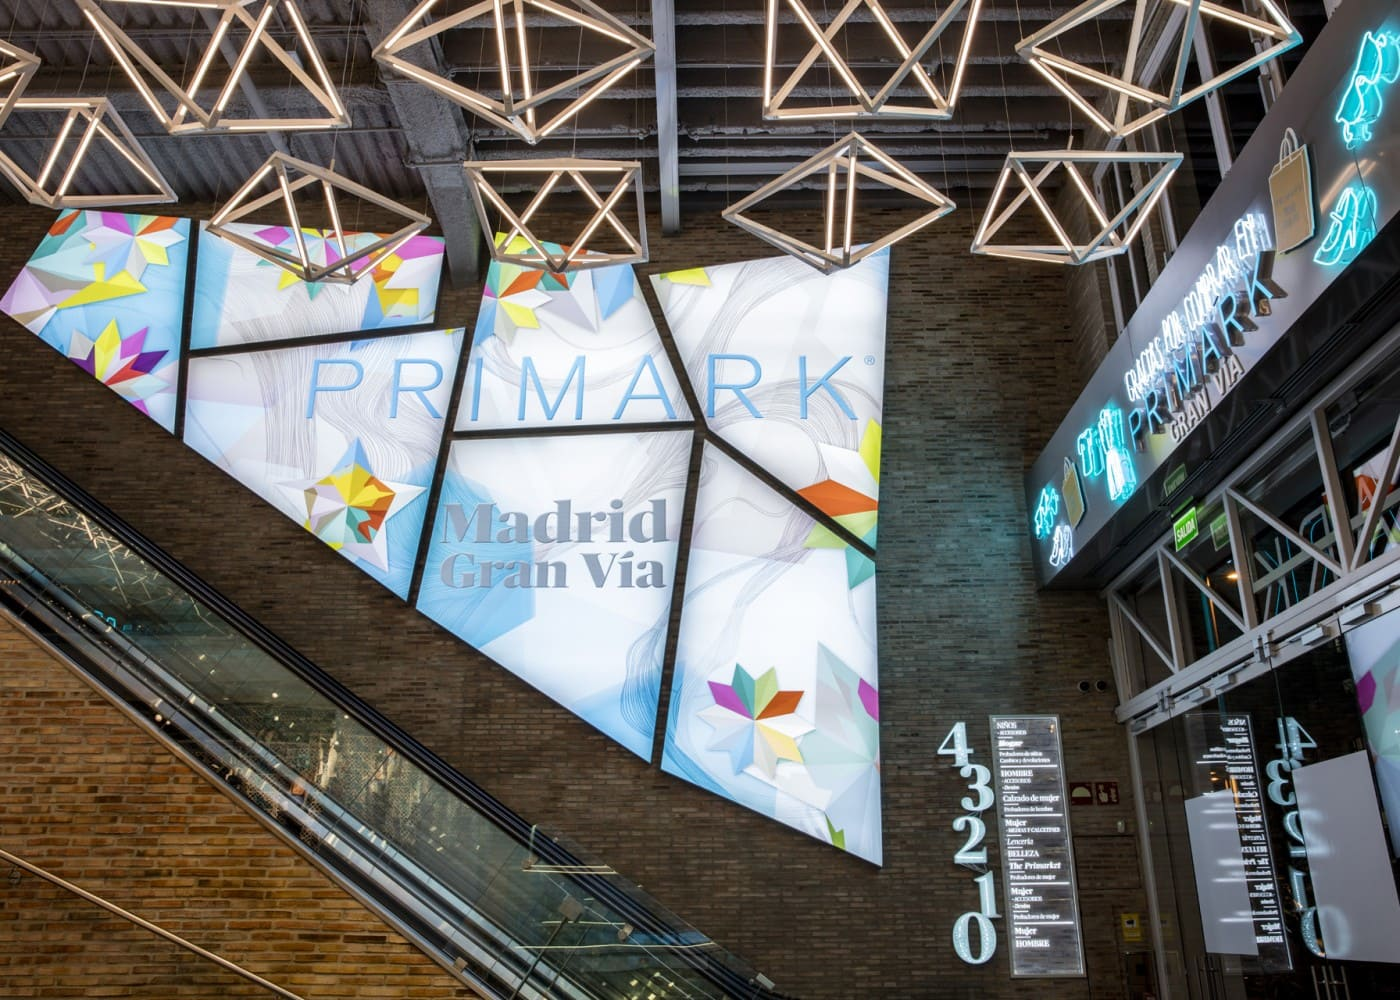 retail lighting design: Primark Madrid Gran Via wall display